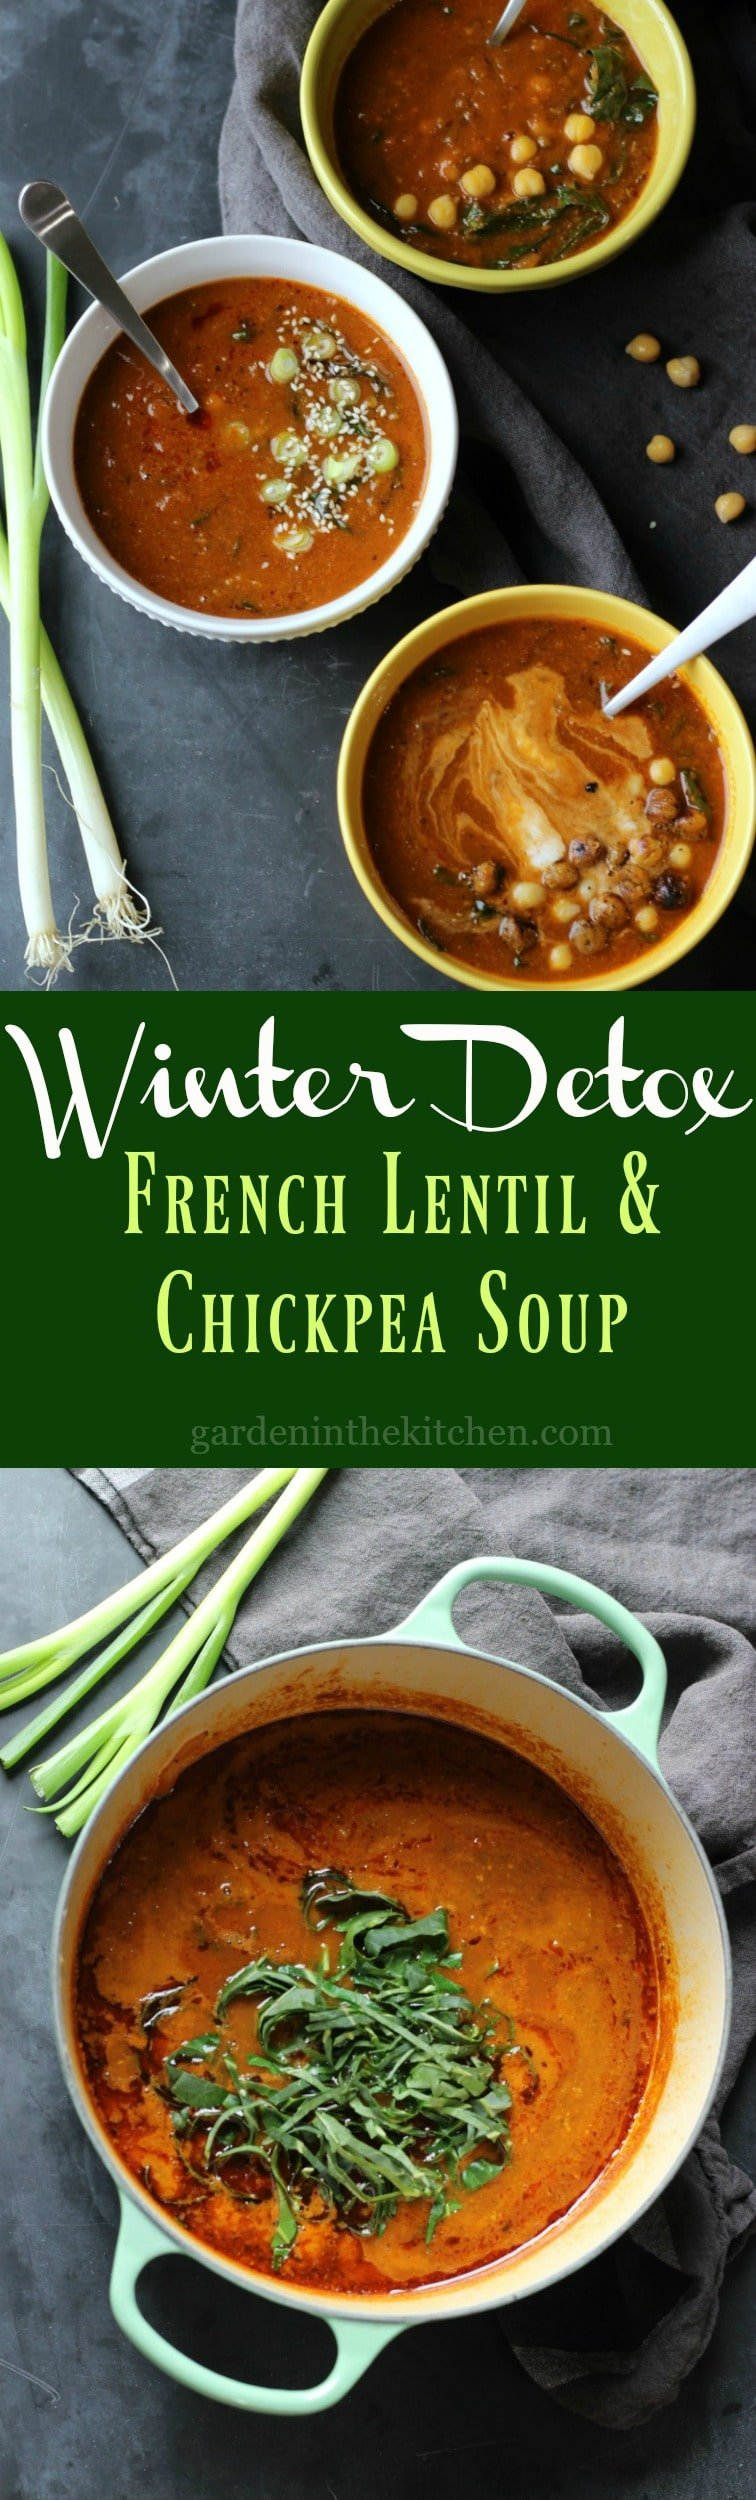 Winter Detox French Lentil & Chickpea Soup (Vegan) | gardeninthekitchen.com